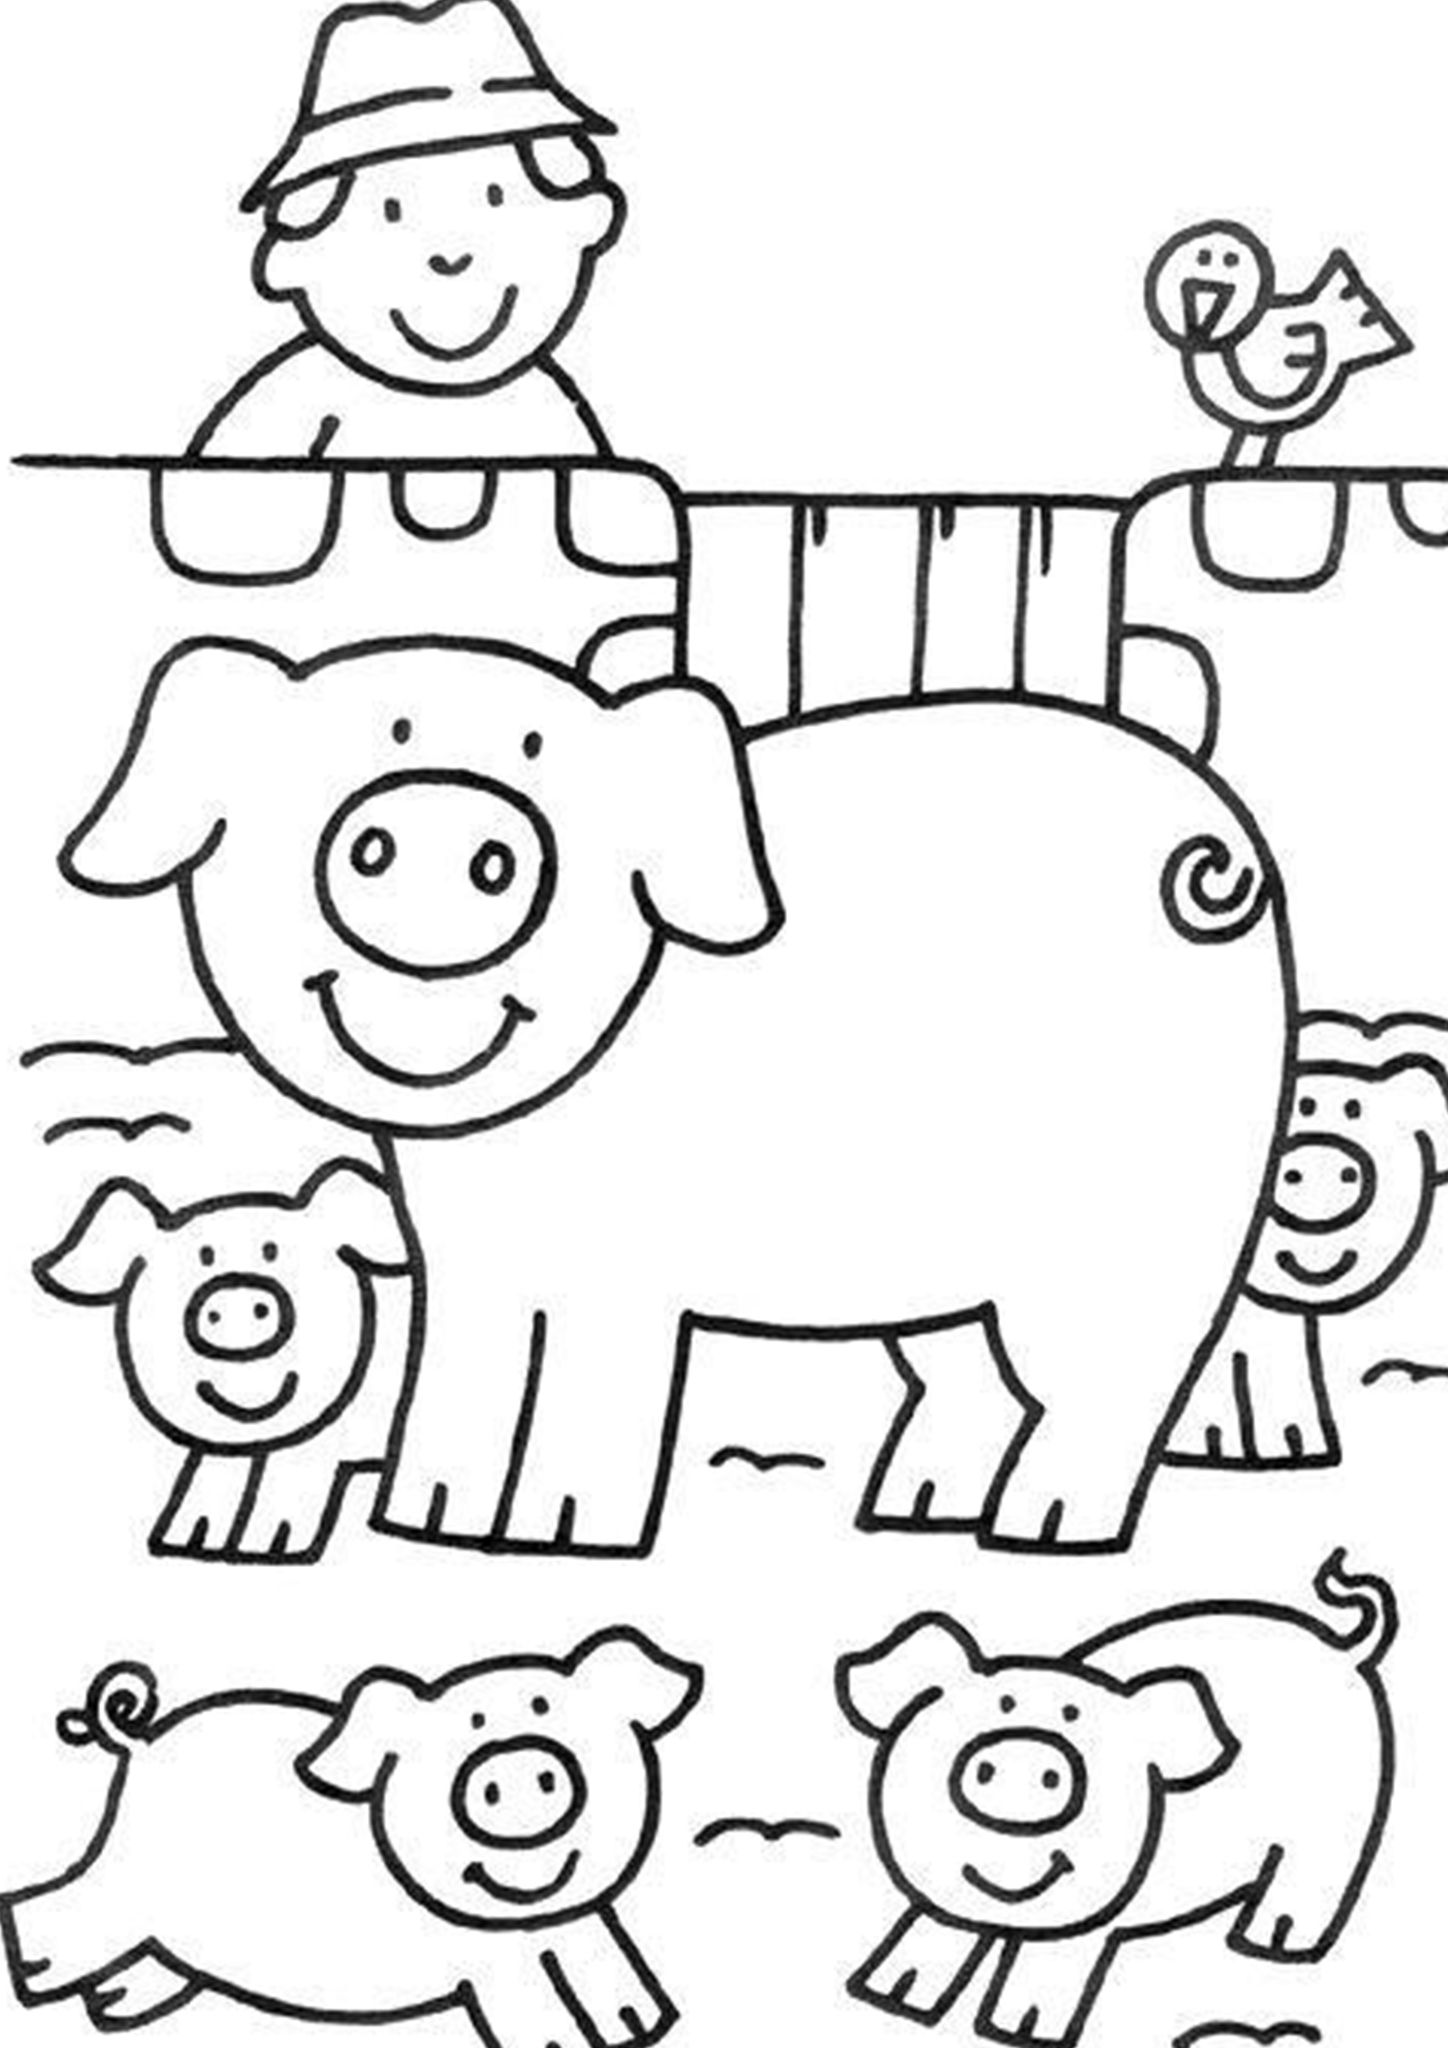 Printable Colouring Pages Farm Animals